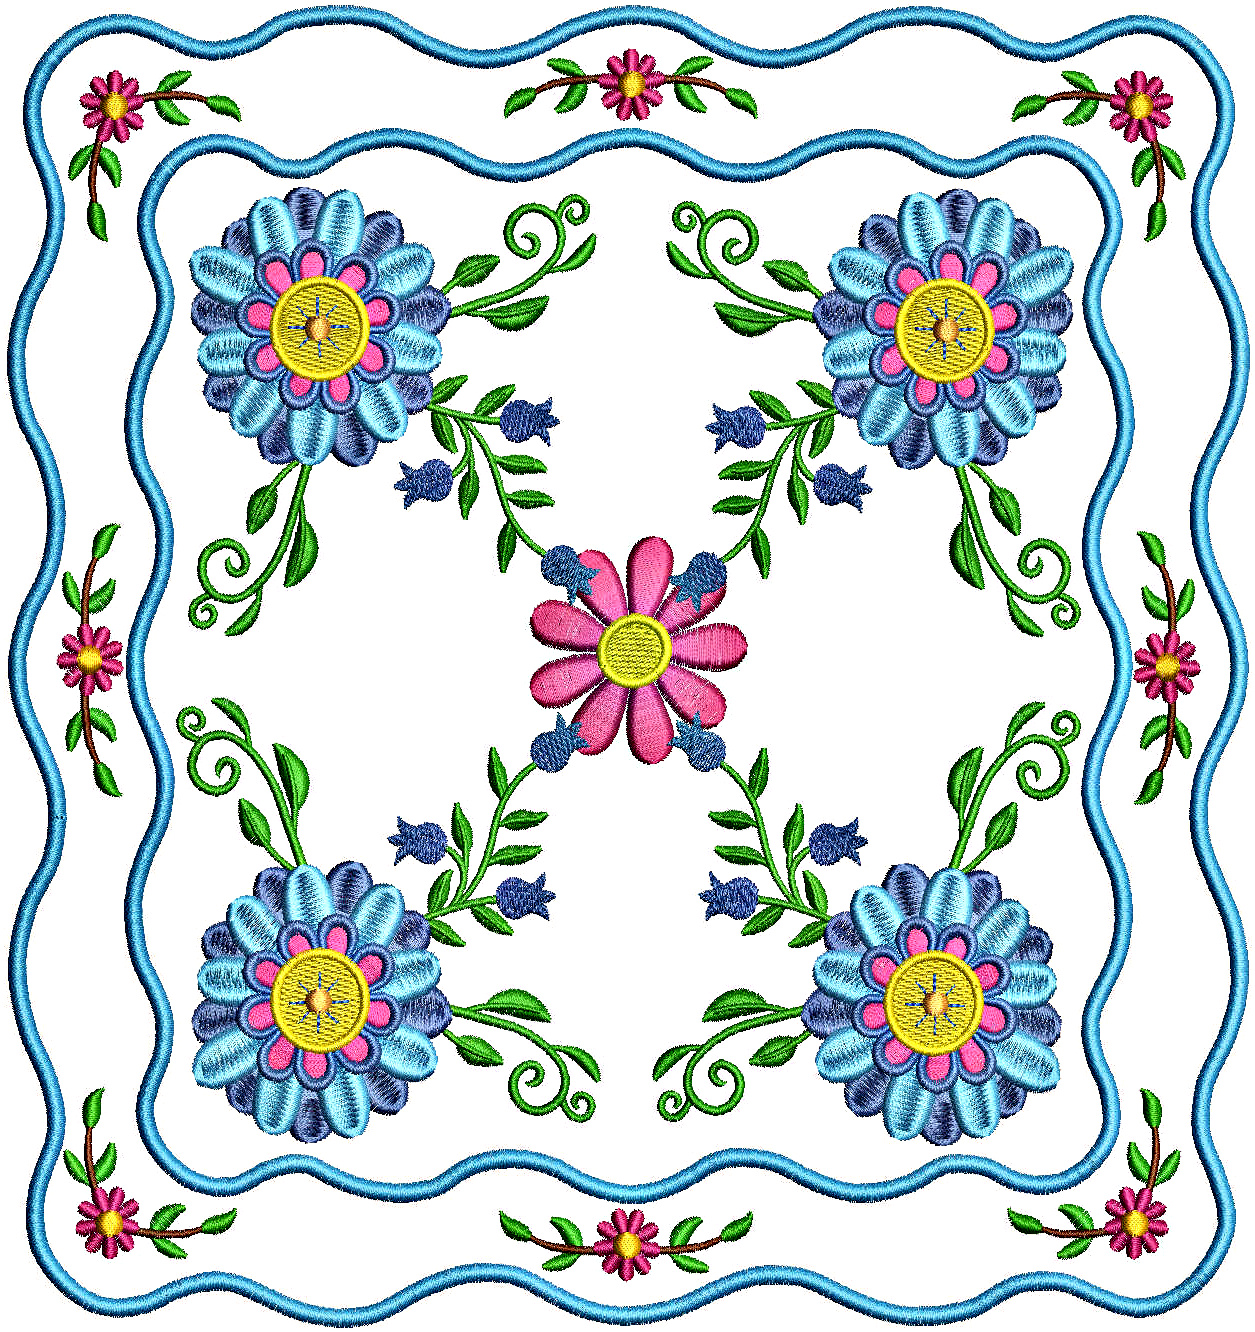 Floral Applique Quilt-8